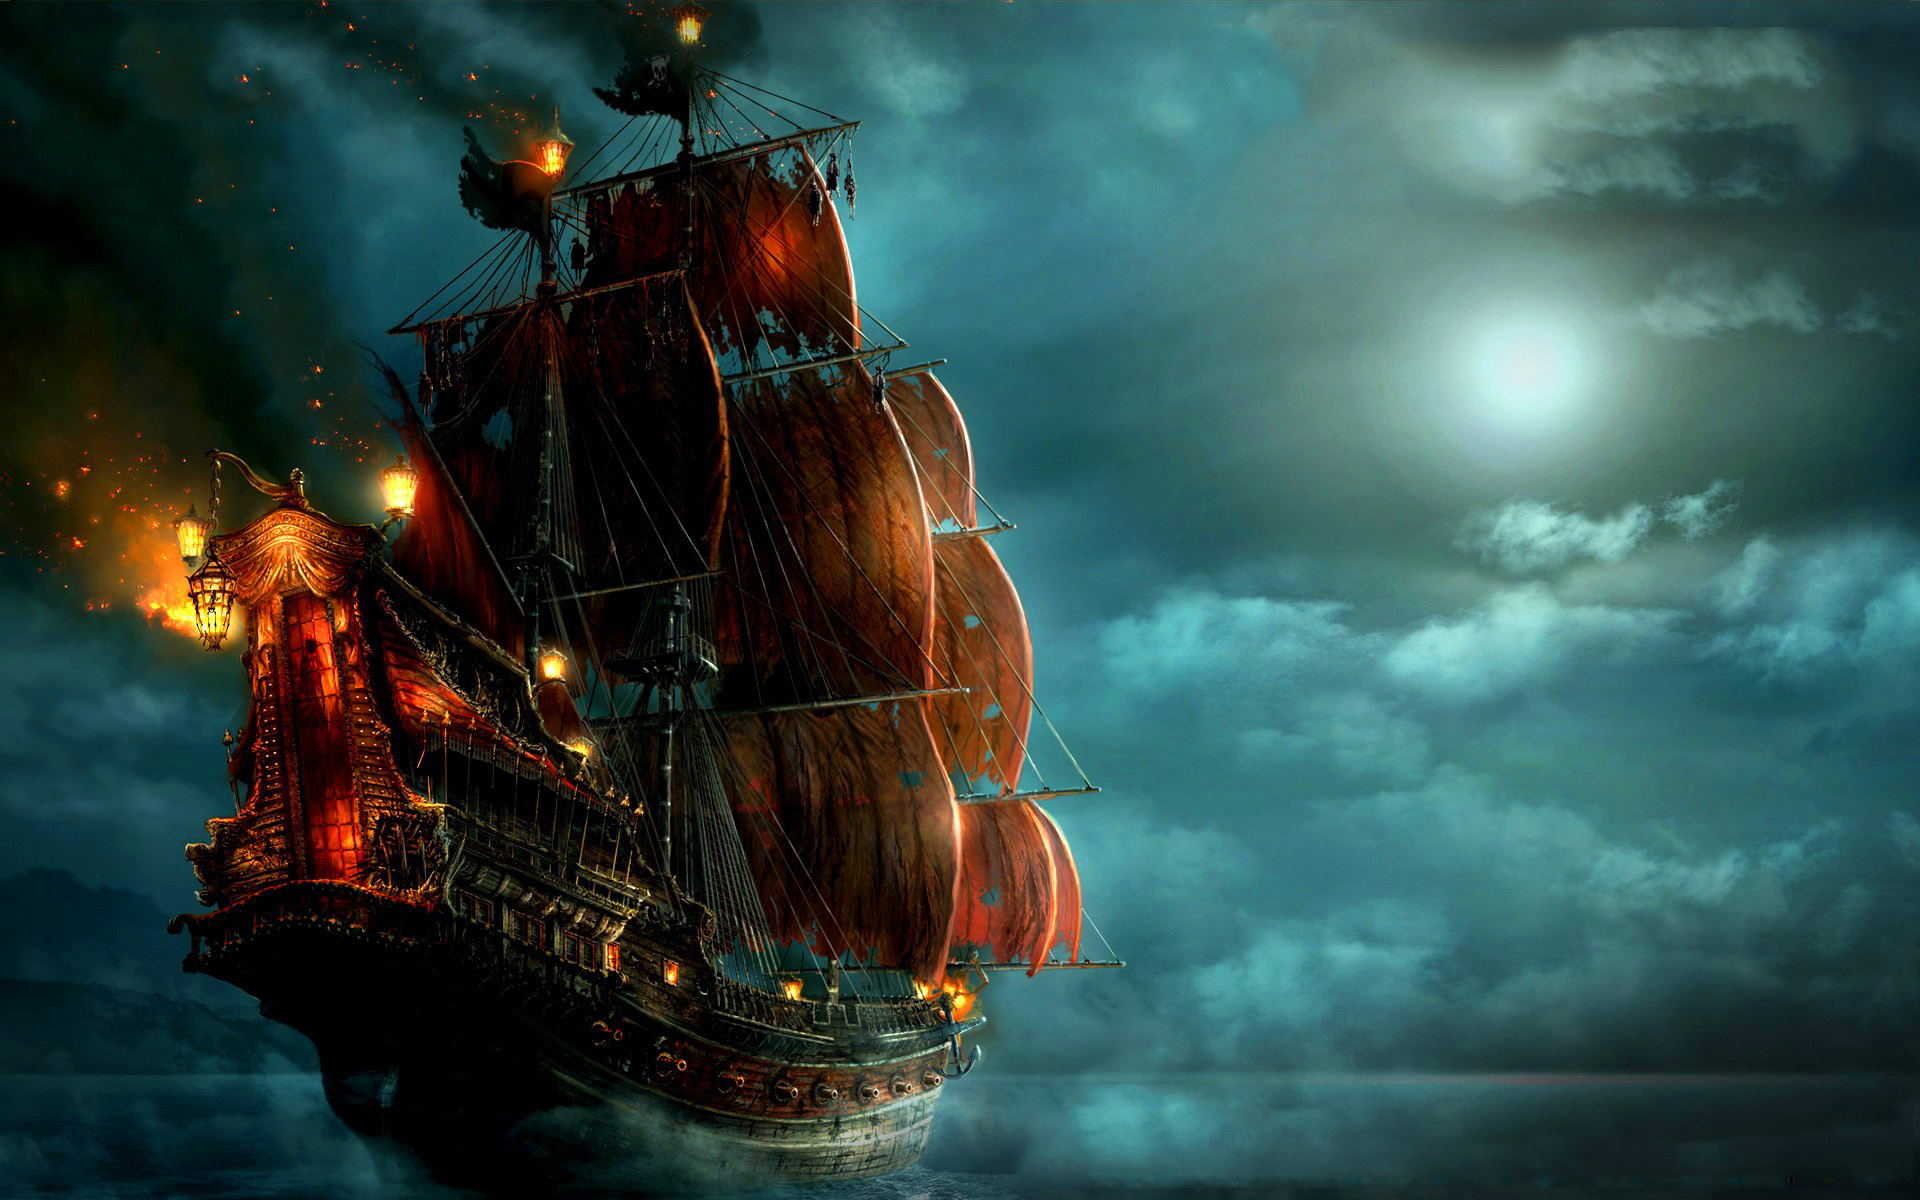 pirate ship sailing Wallpaper Background 29073 1920x1200